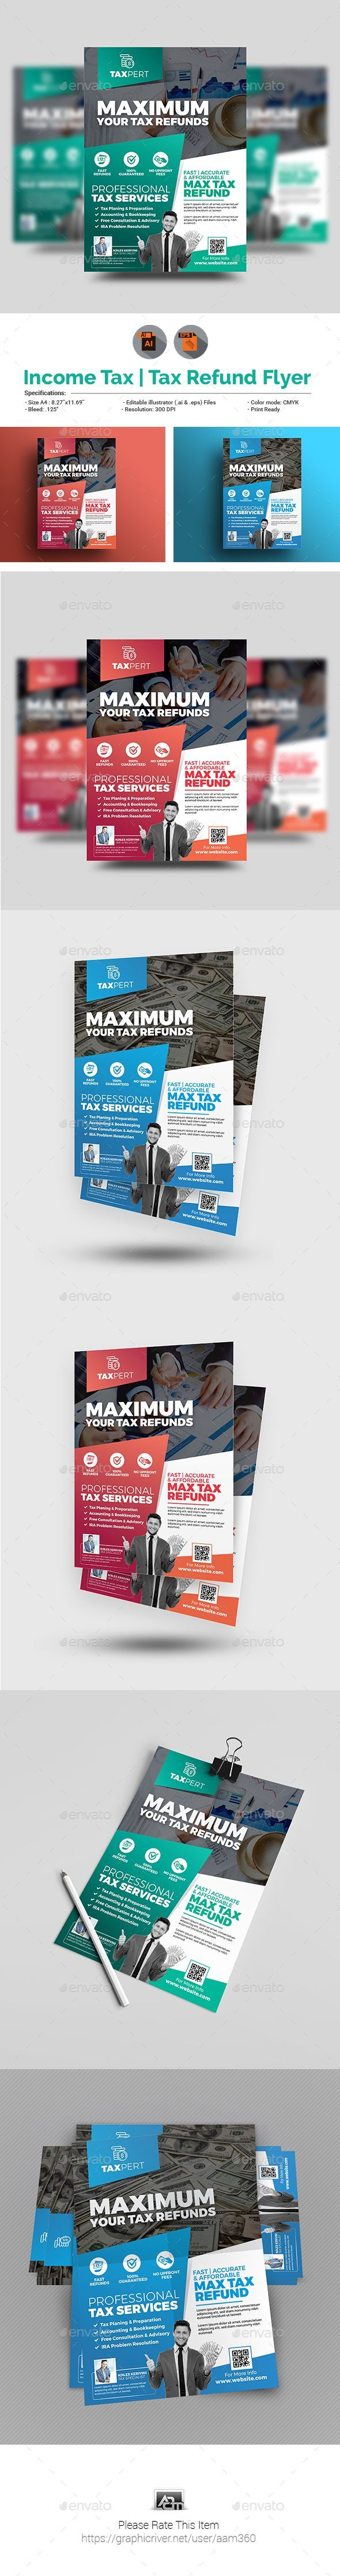 Income Tax/Tax Refund Flyer Template - Corporate Flyers #FinancePoster